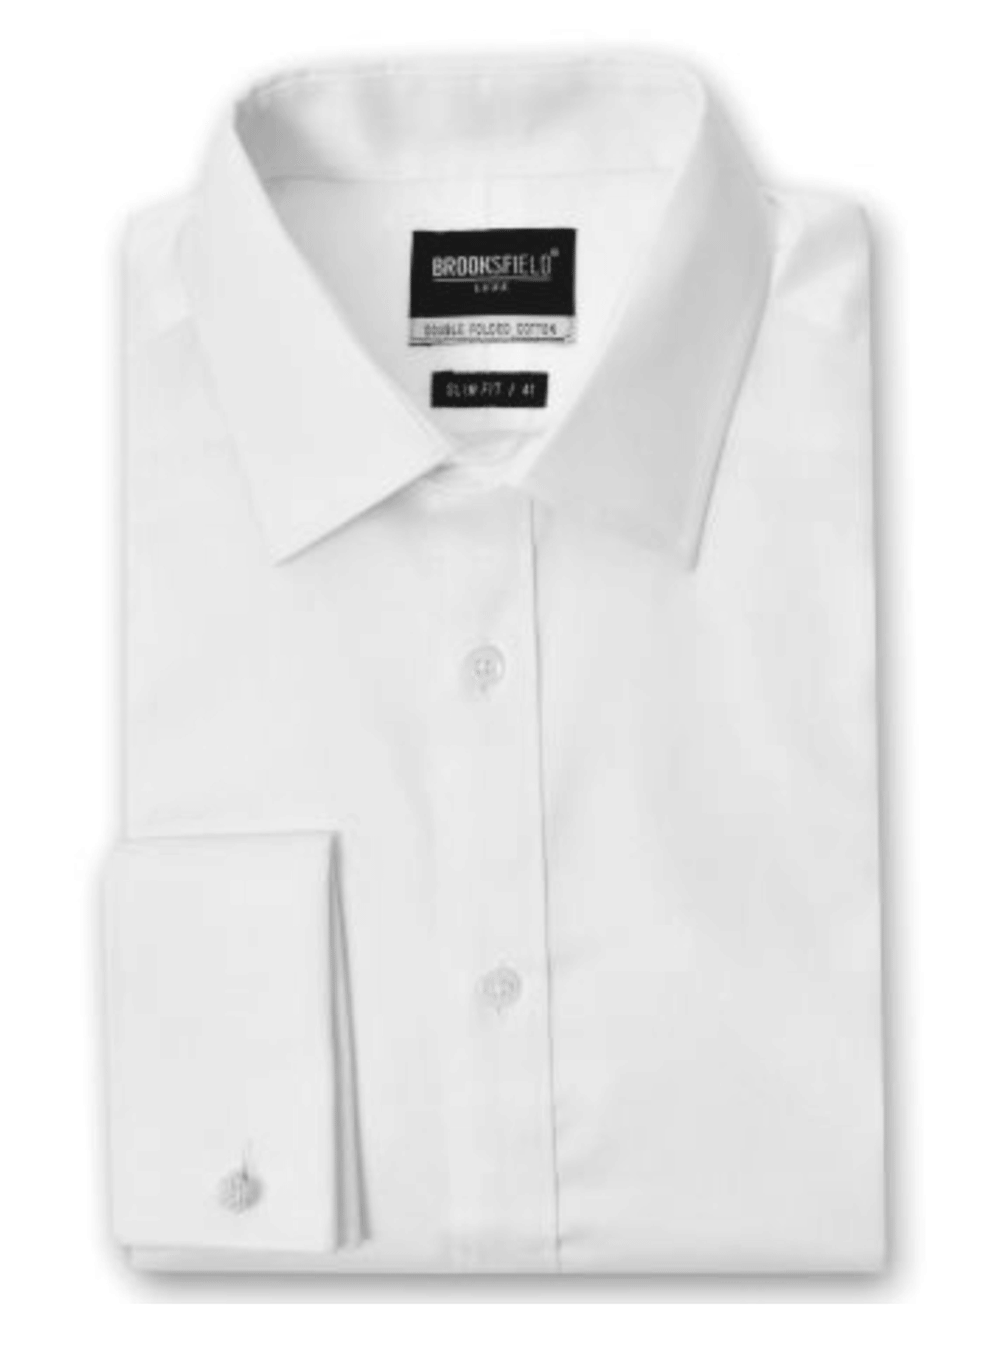 Brooksfield Luxe Business Shirt BFC1194 - Harry's for Menswear